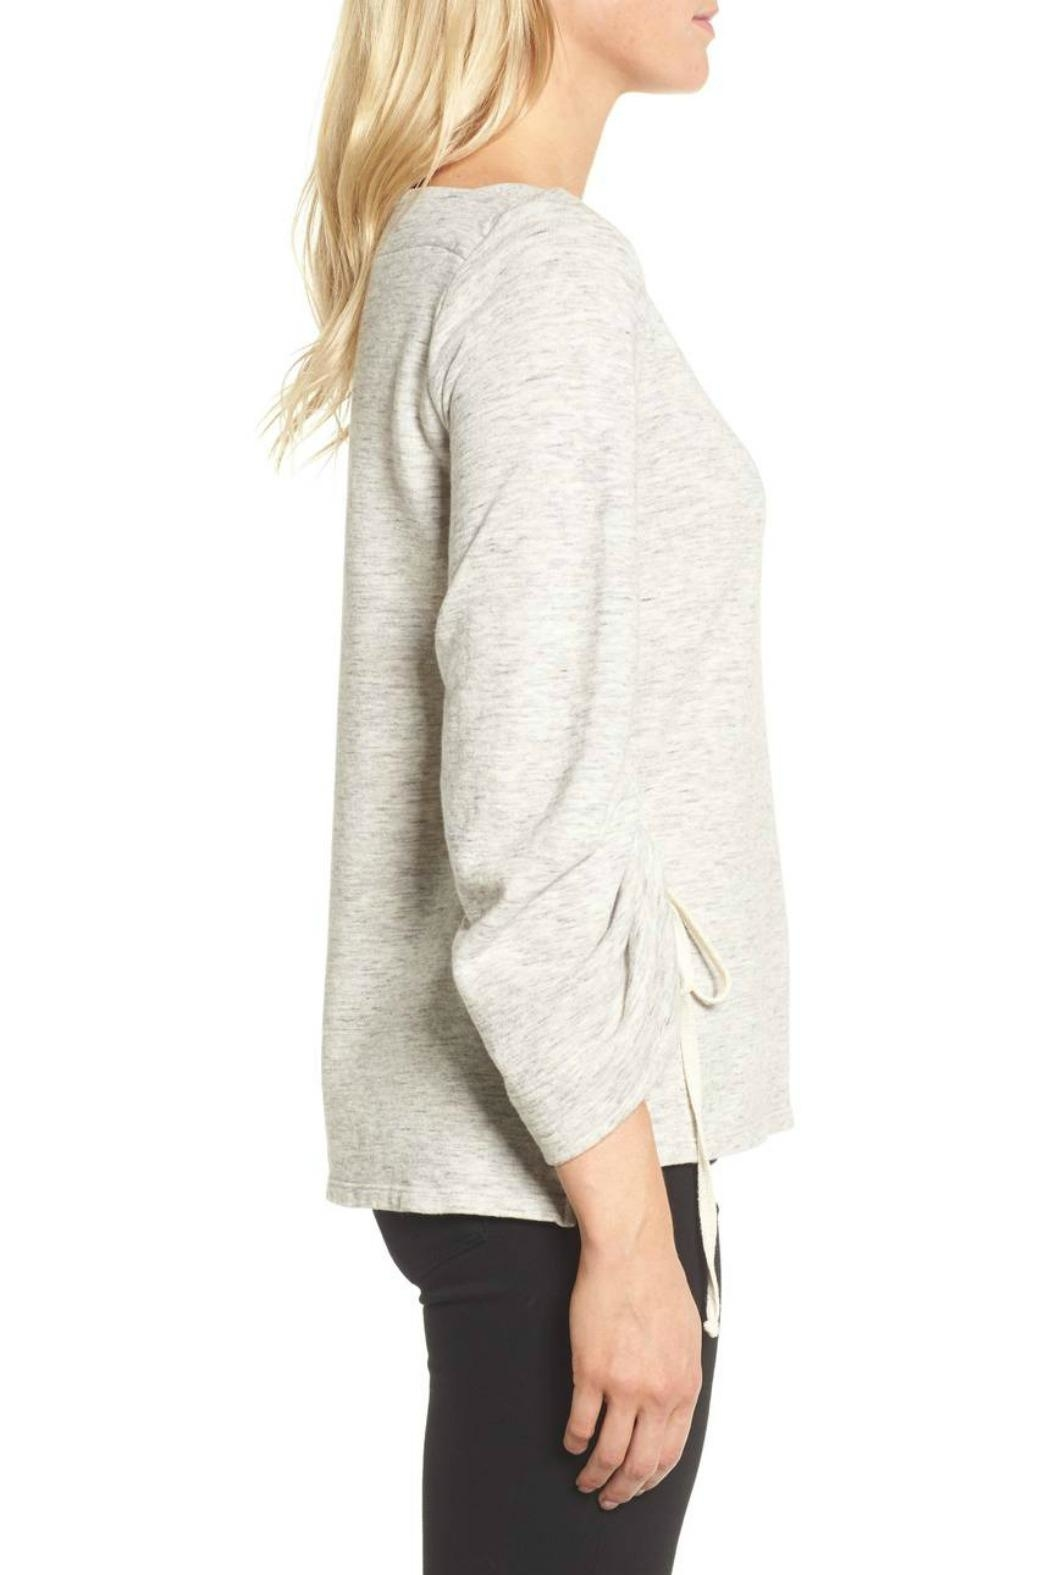 Ella Moss Ruched Sleeve Sweatshirt - Front Full Image